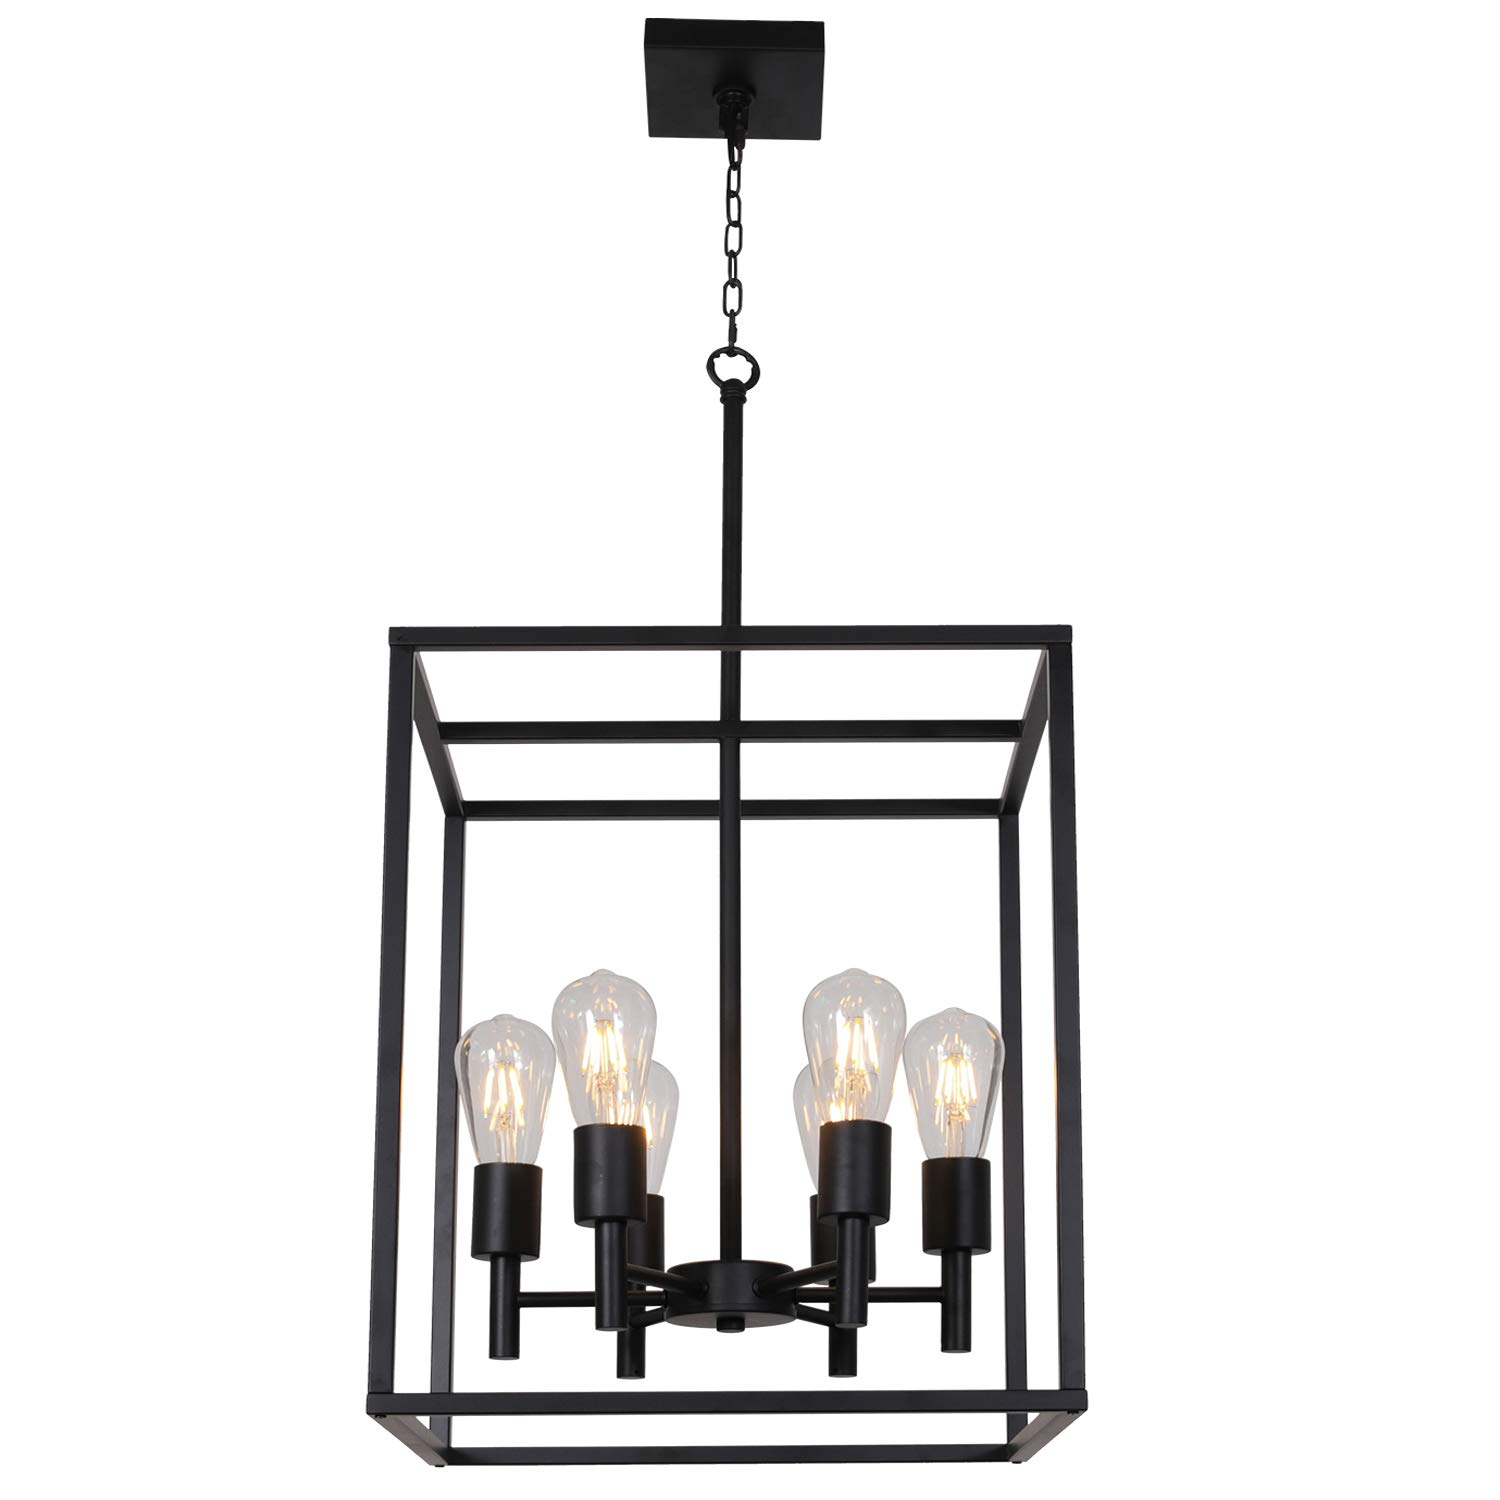 TODOLUZ 6 Lights Large Cage Foyer Pendant Light 16 Inches Hallway Farmhouse Chandelier Lighting Entryway Ceiling Lamp Black for Kitchen Dining Room Entryway